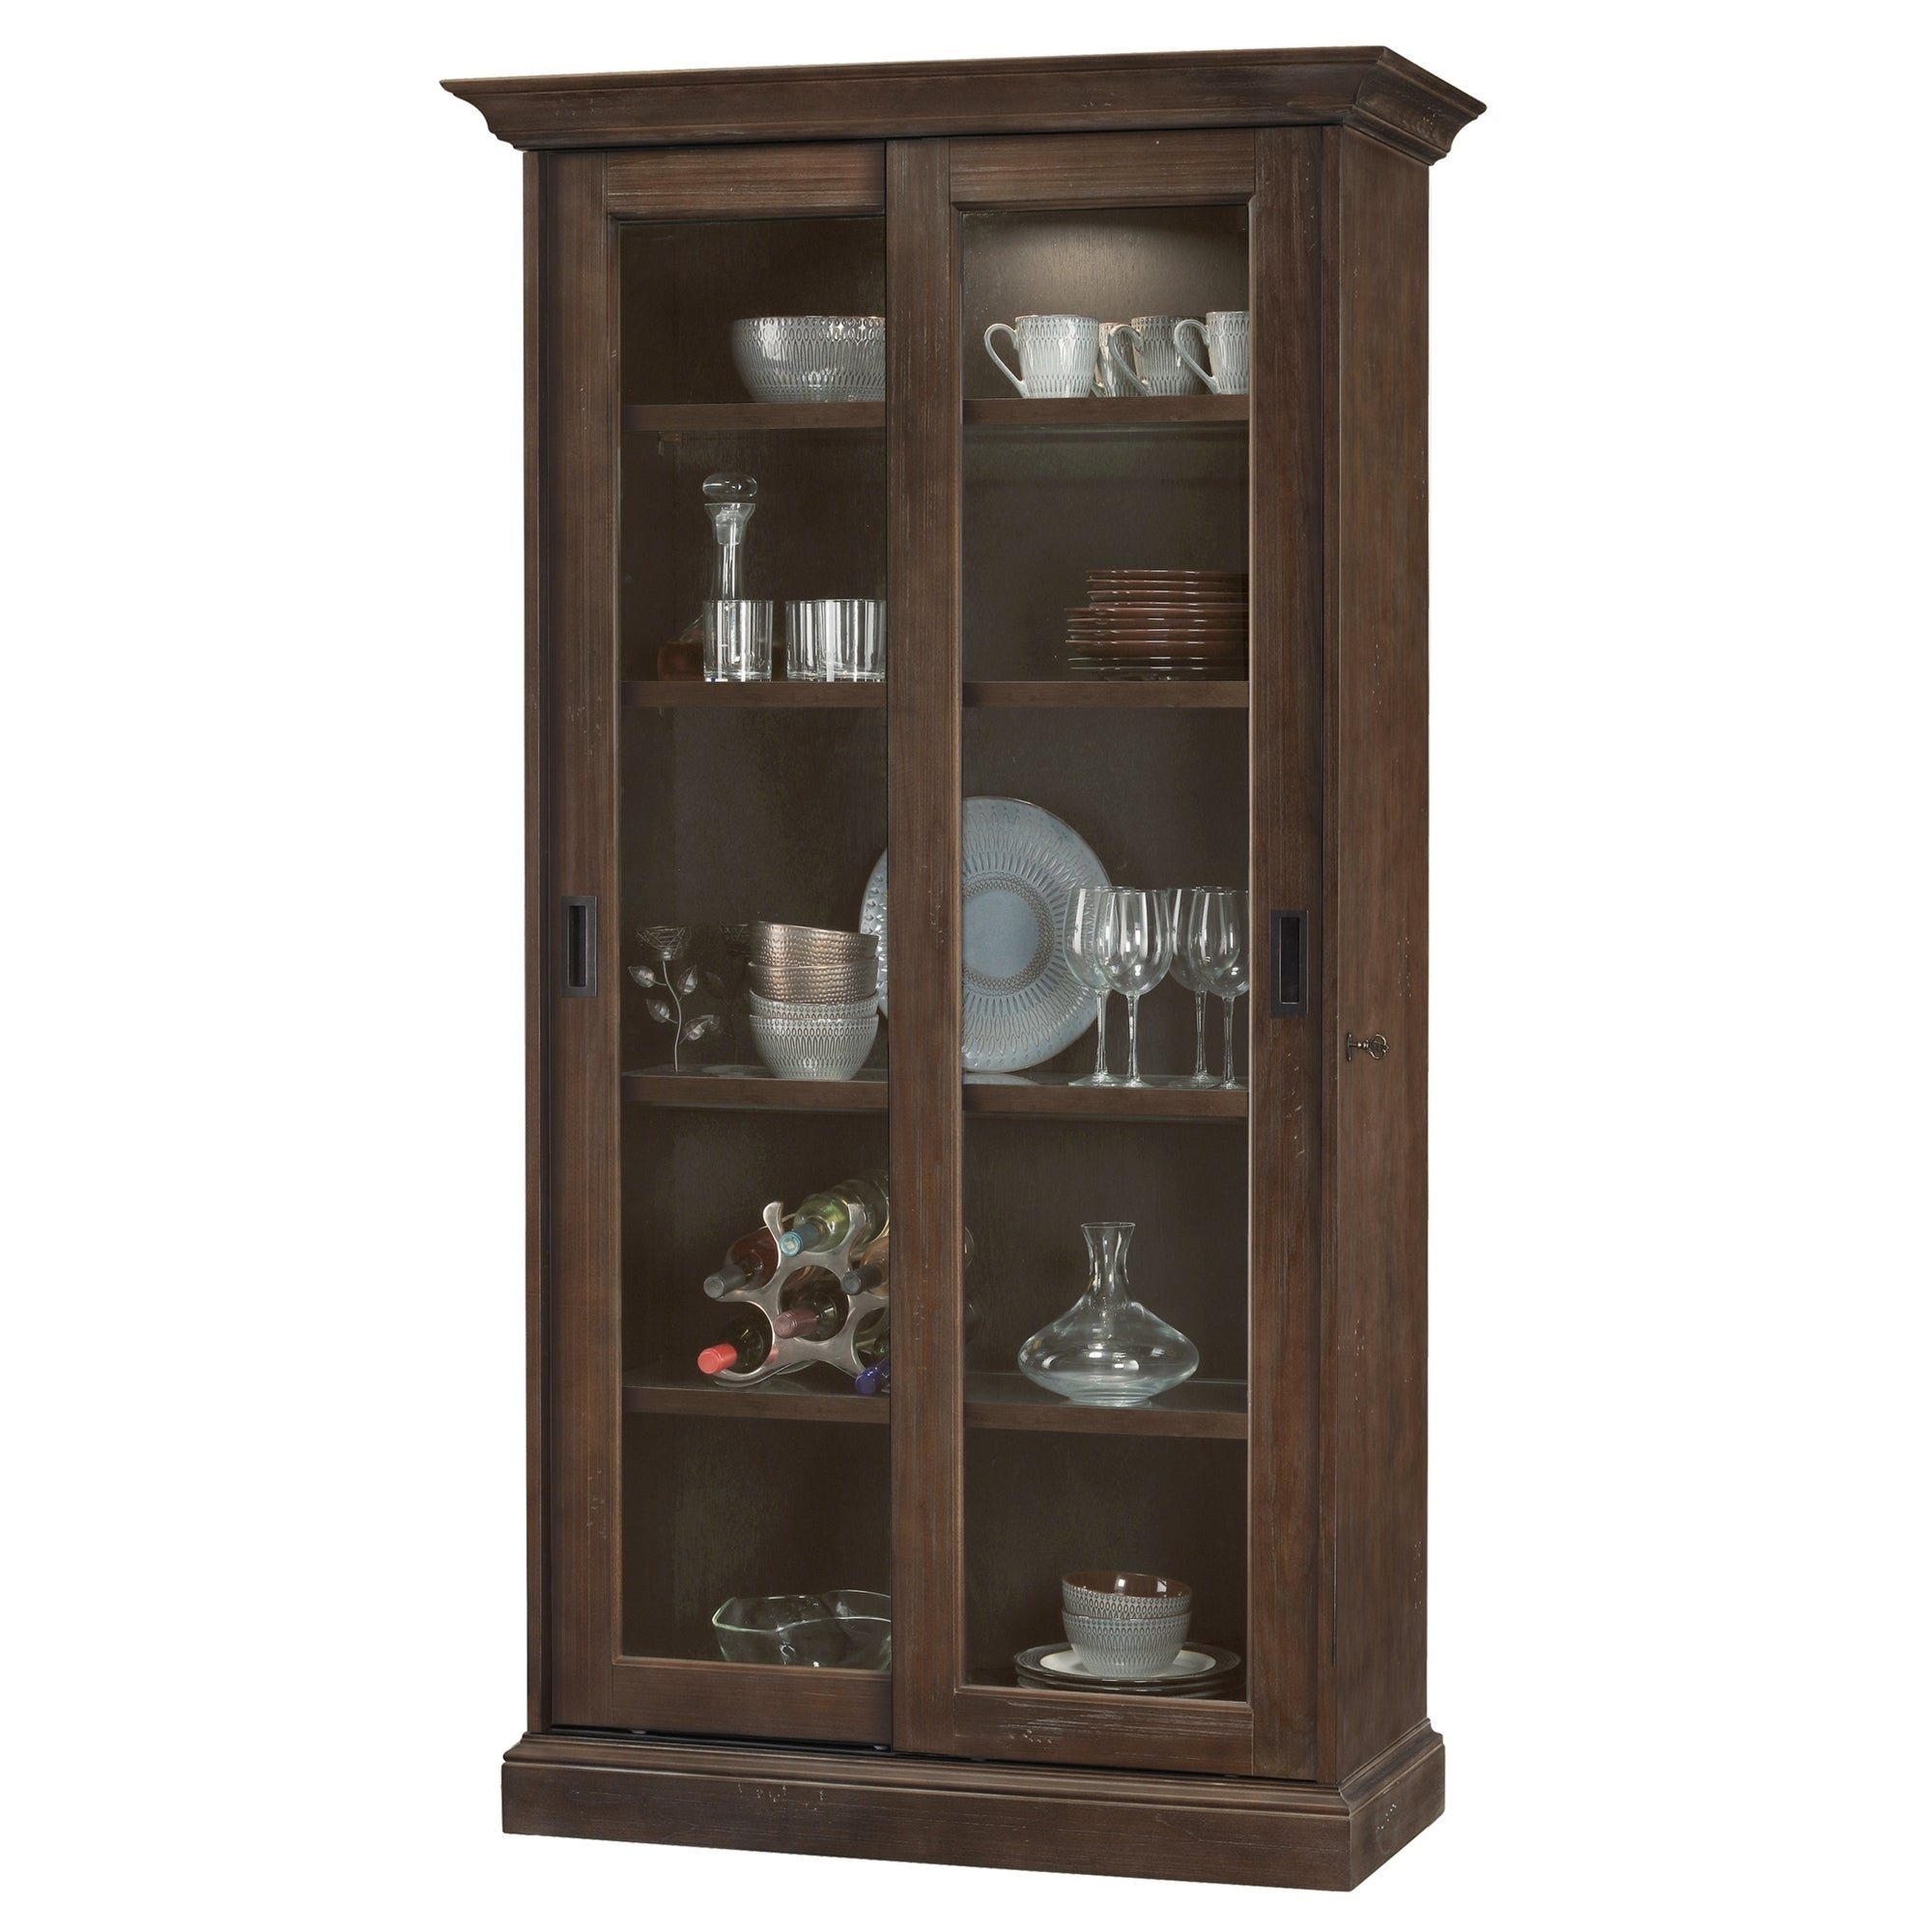 Shop Howard Miller Meisha Contemporary Aged Umber Wood Tall 5 Shelf